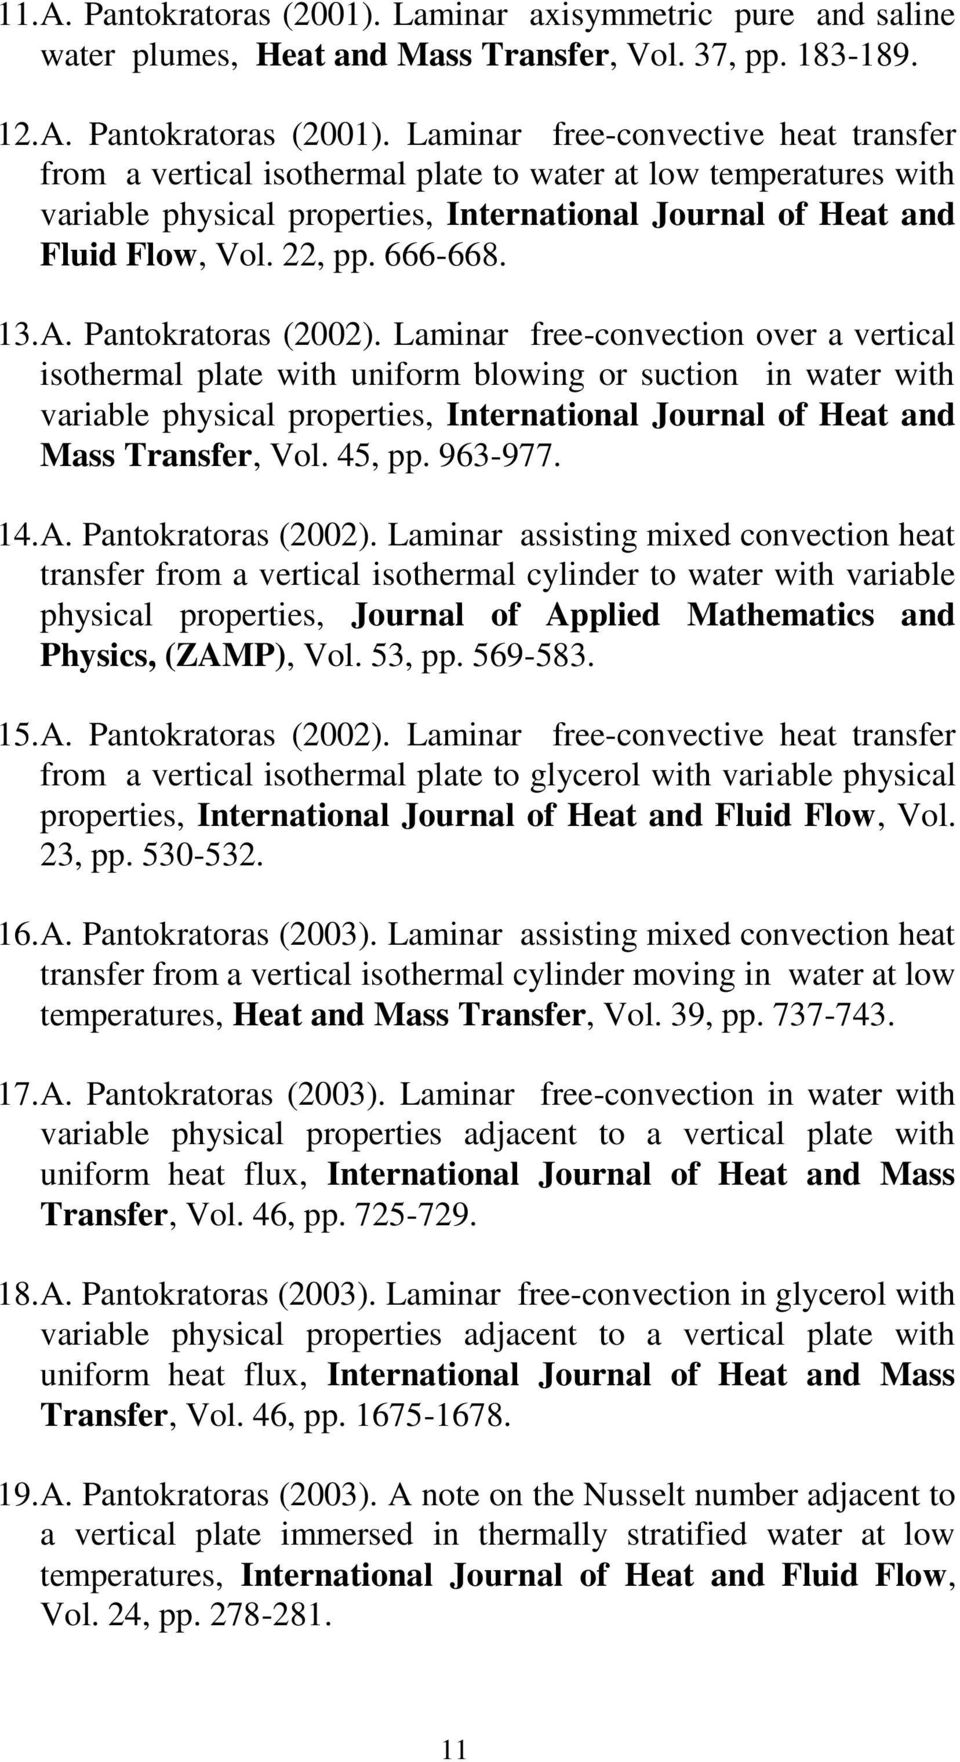 Laminar free-convective heat transfer from a vertical isothermal plate to water at low temperatures with variable physical properties, International Journal of Heat and Fluid Flow, Vol. 22, pp.